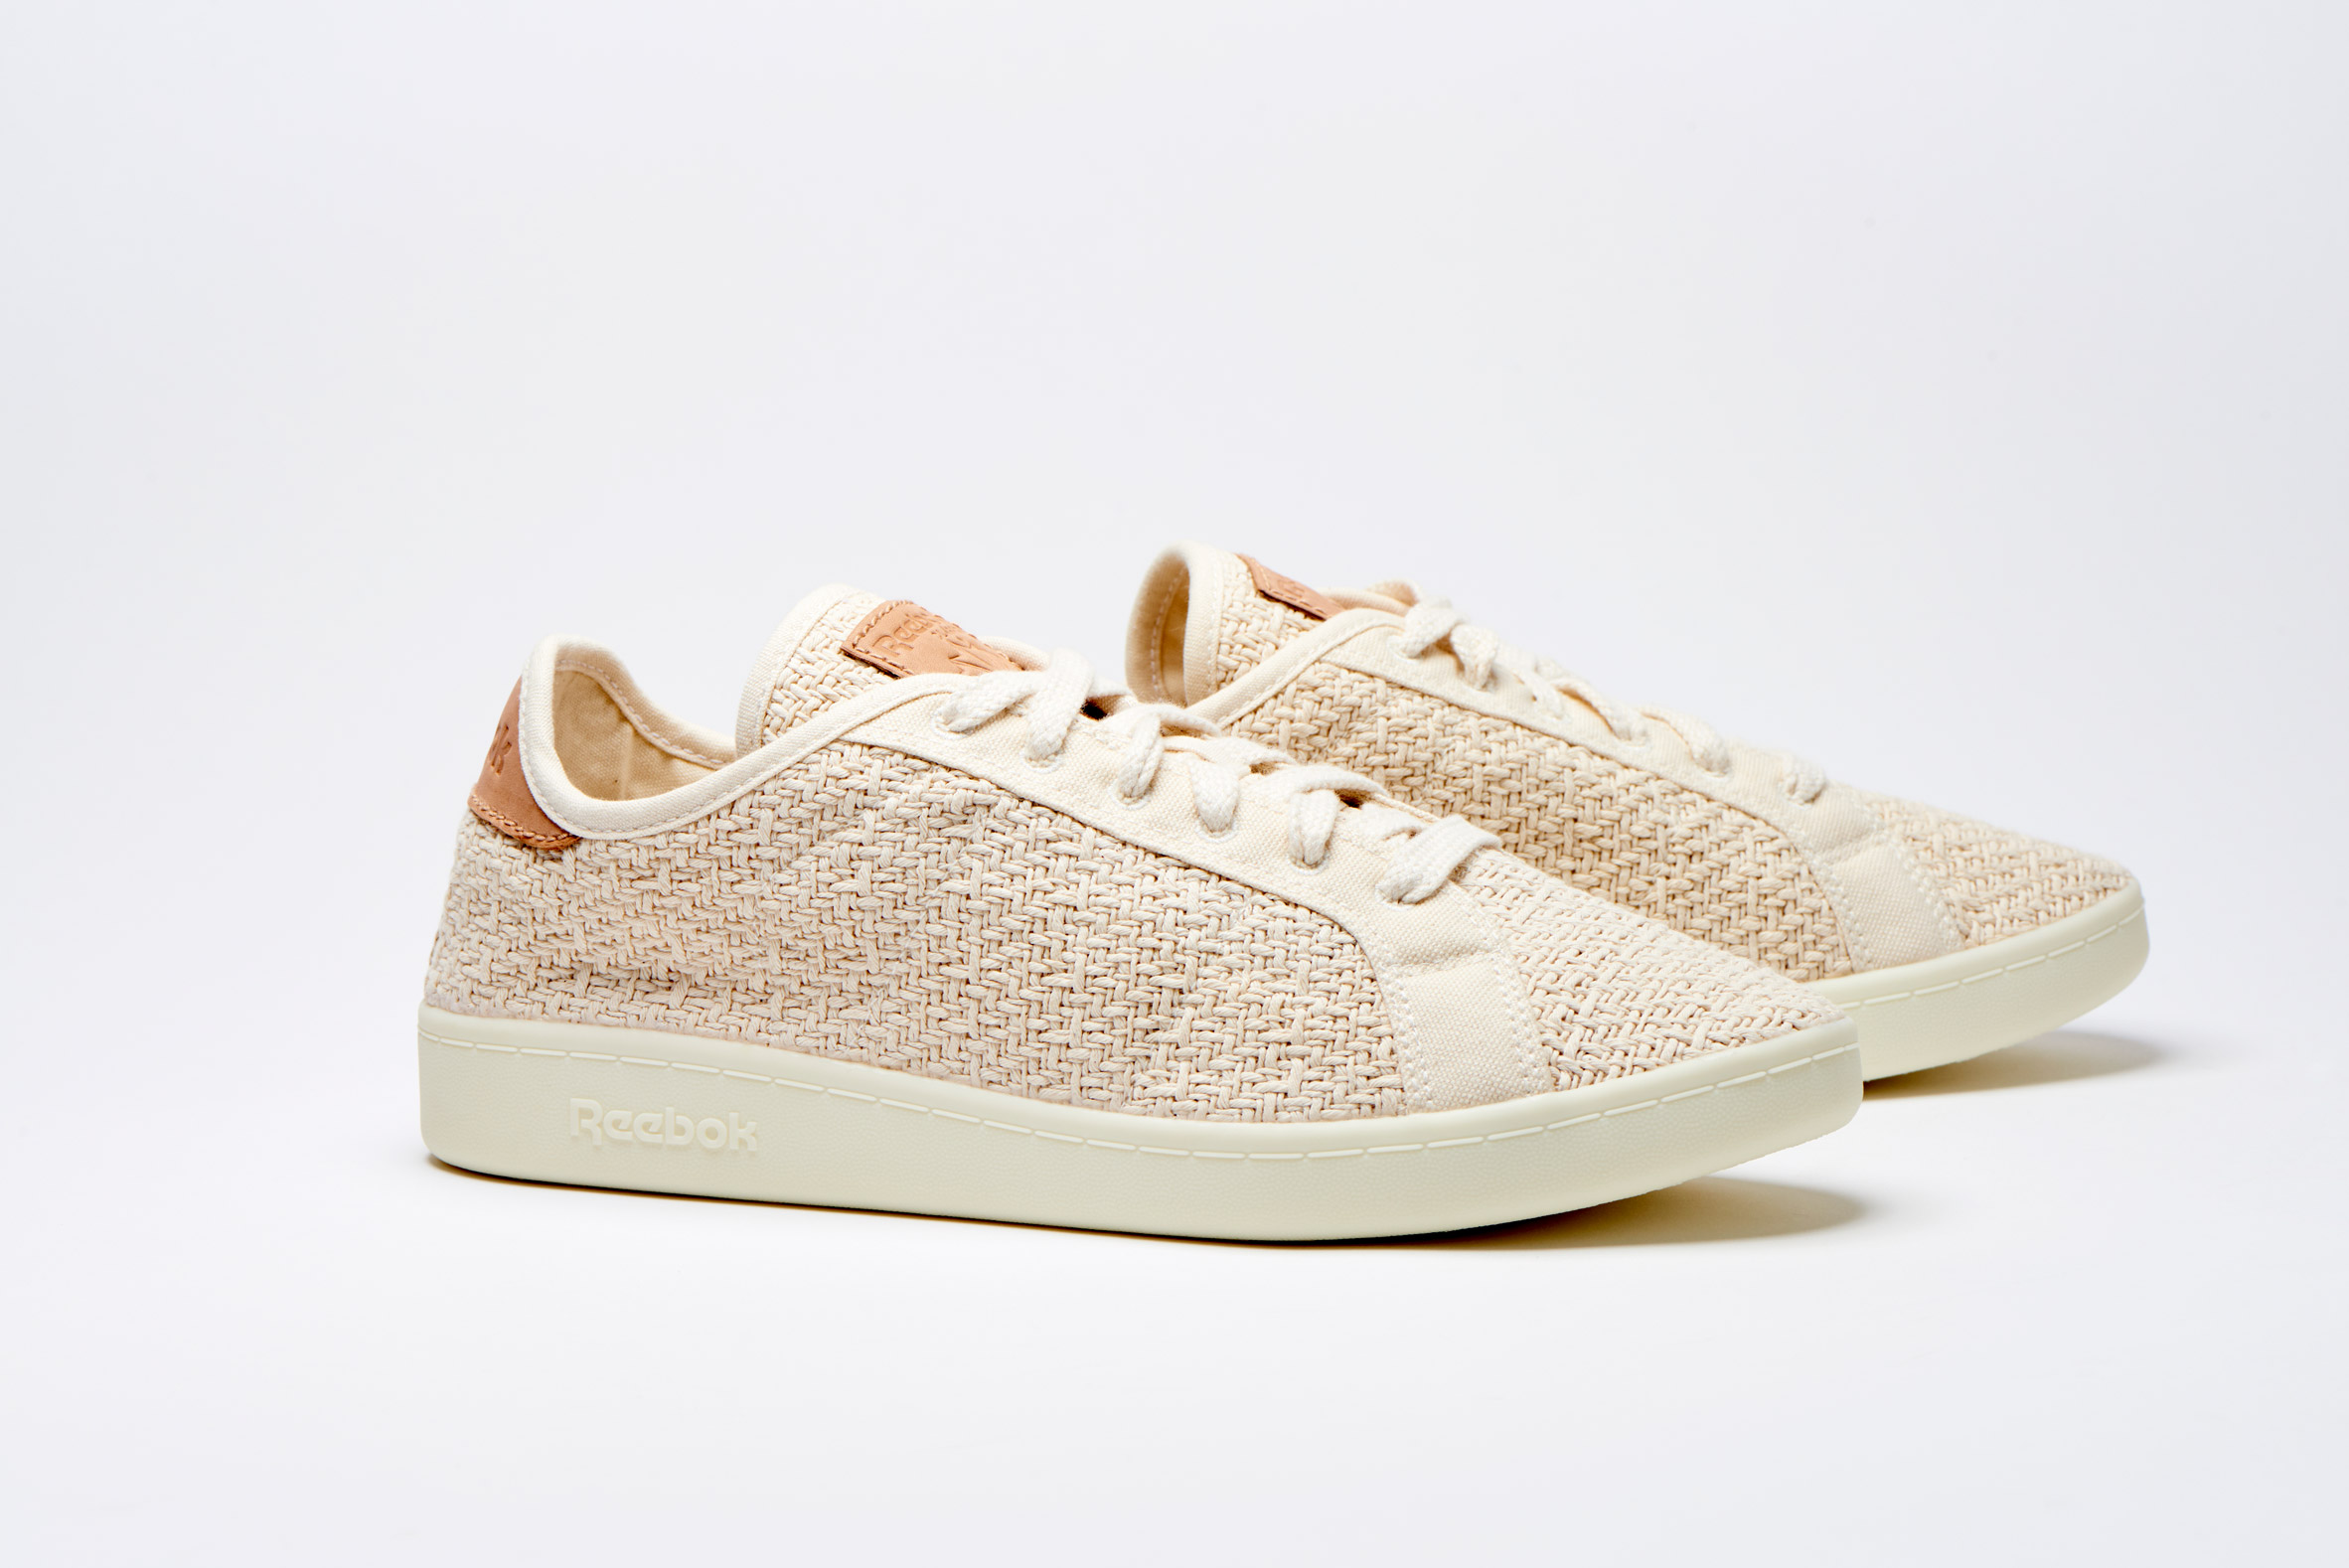 3411808c661 Reebok launches plant-based Cotton + Corn sneaker | Dezeen